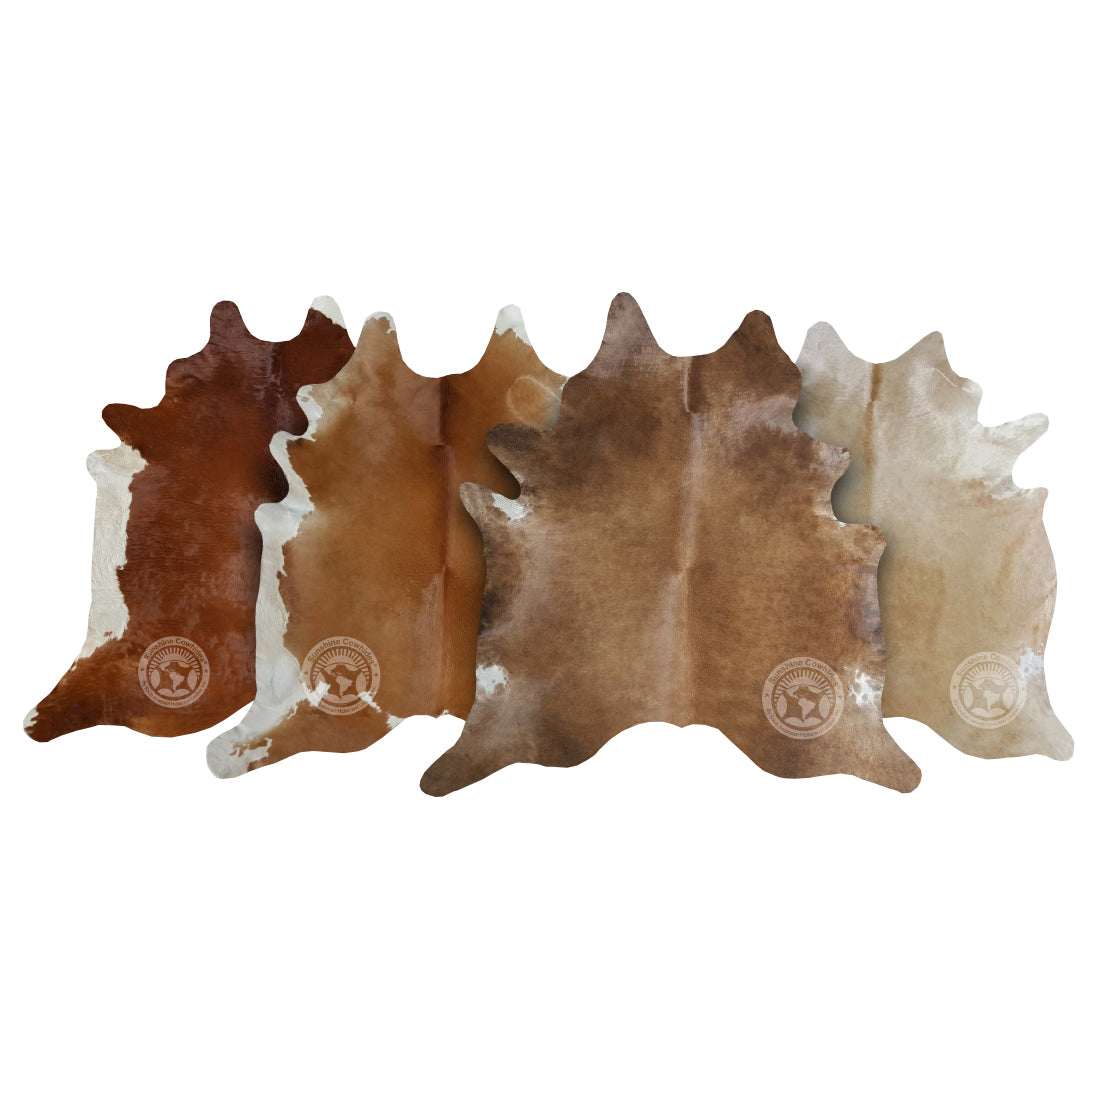 Natural Cowhide Rug - Light Tones